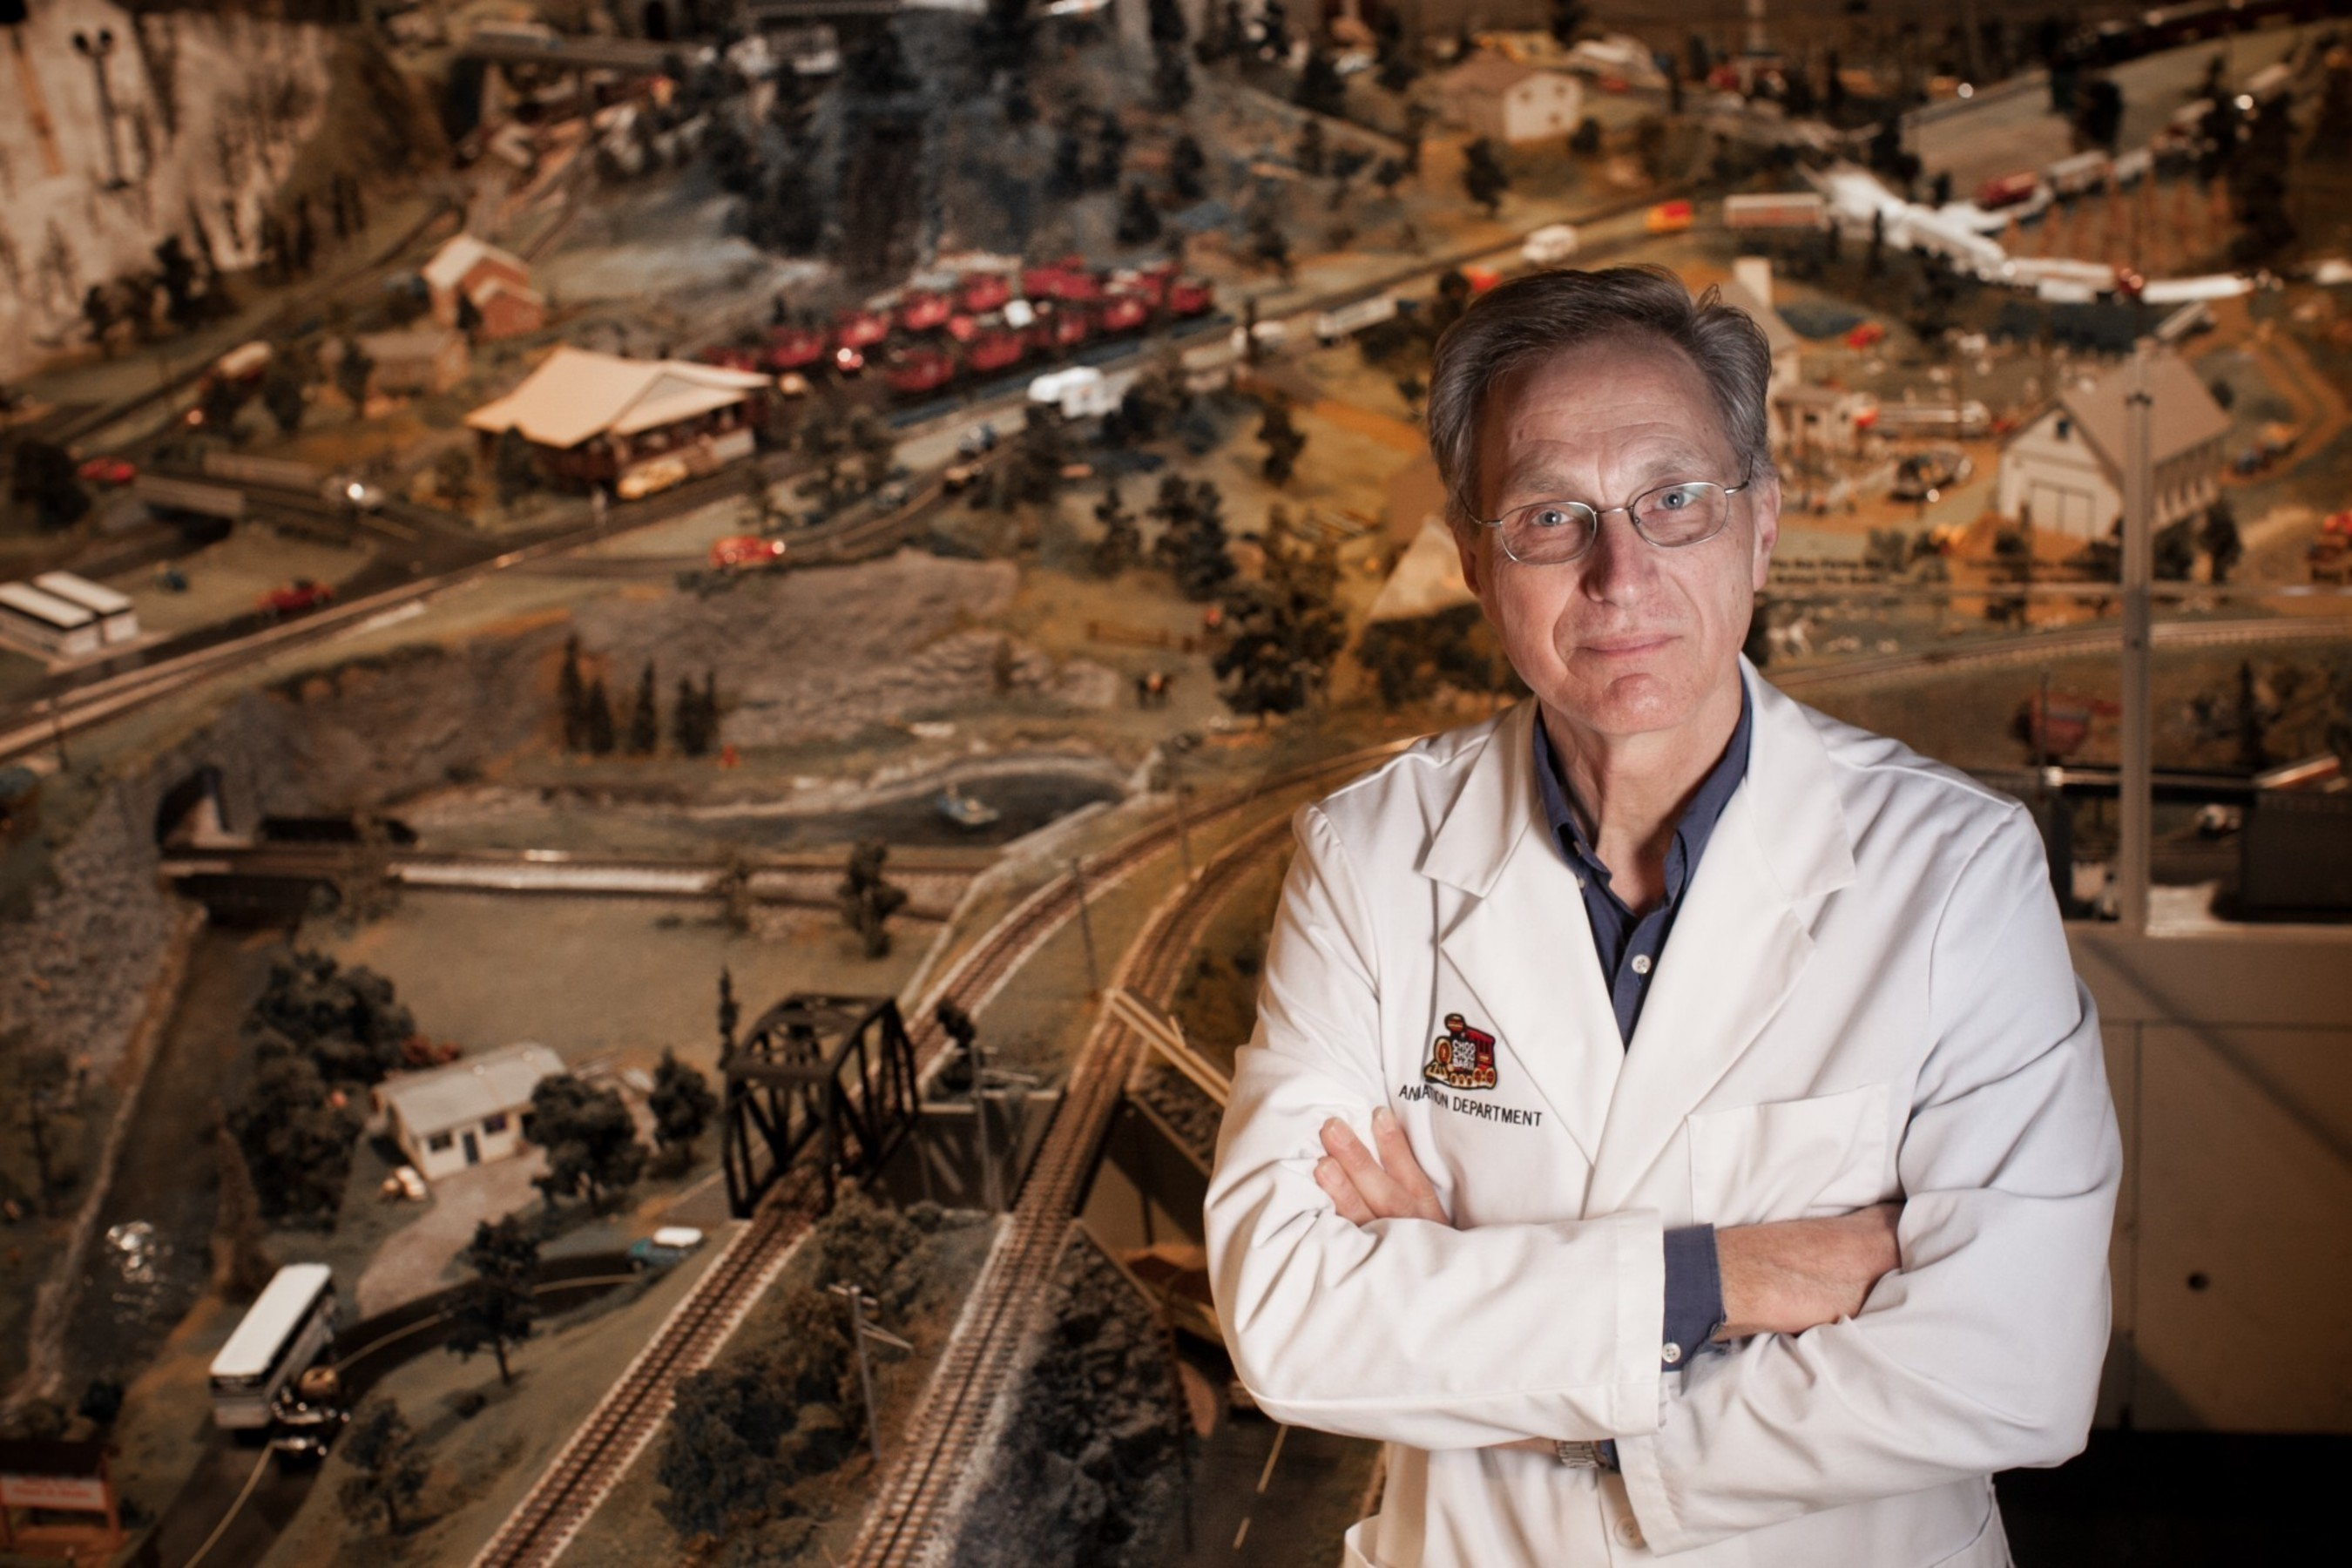 The Mayor of Traintown, U.S.A., Tom Groff (PRNewsFoto/Choo Choo Barn)